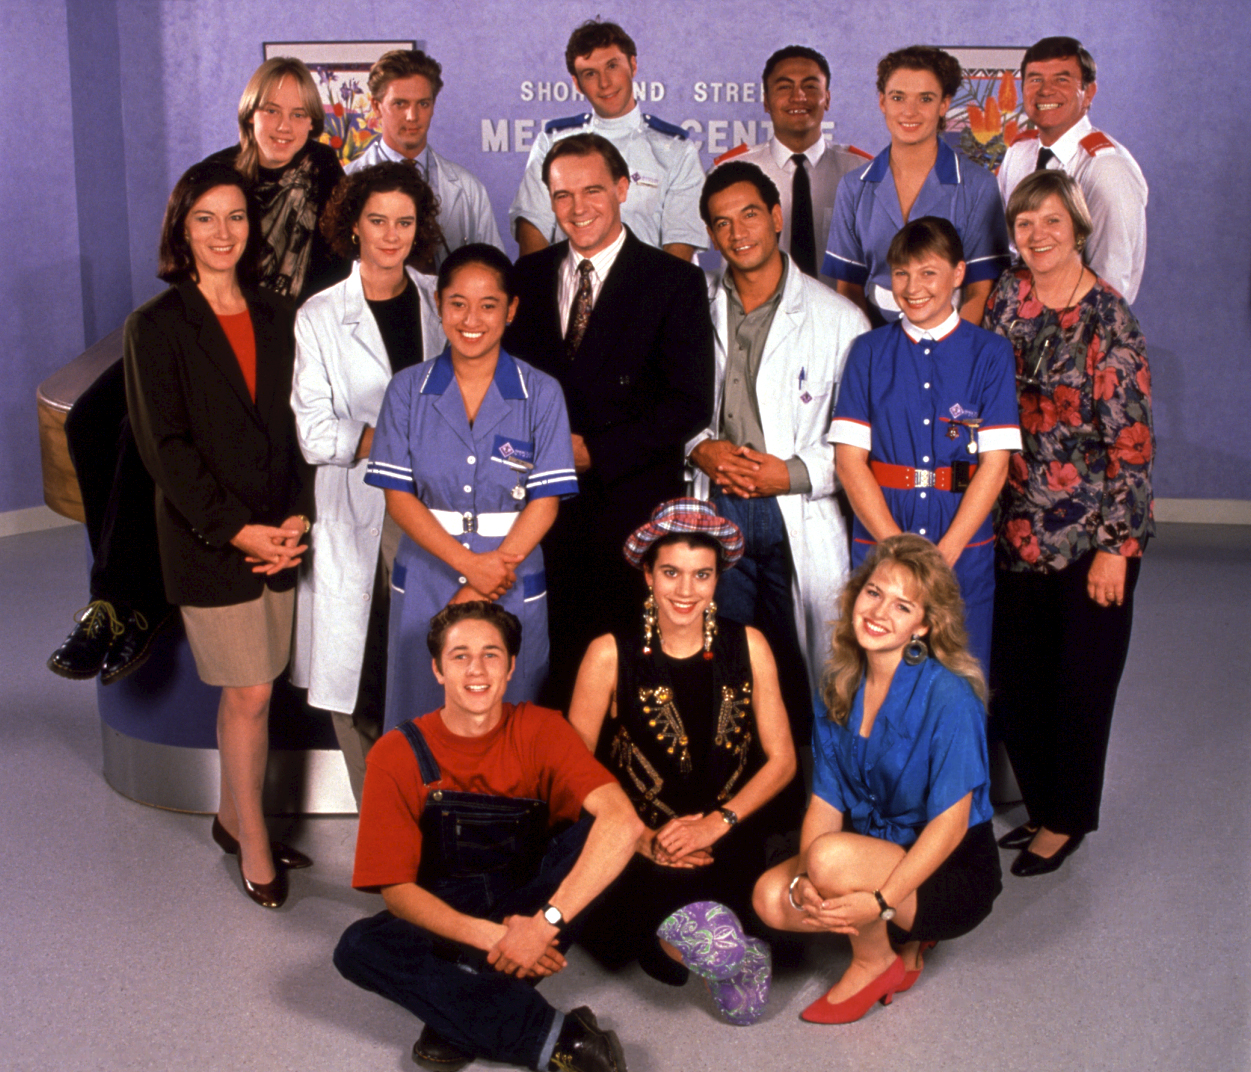 Shortland Street cast of 1992: Where are they now? - NZ Herald